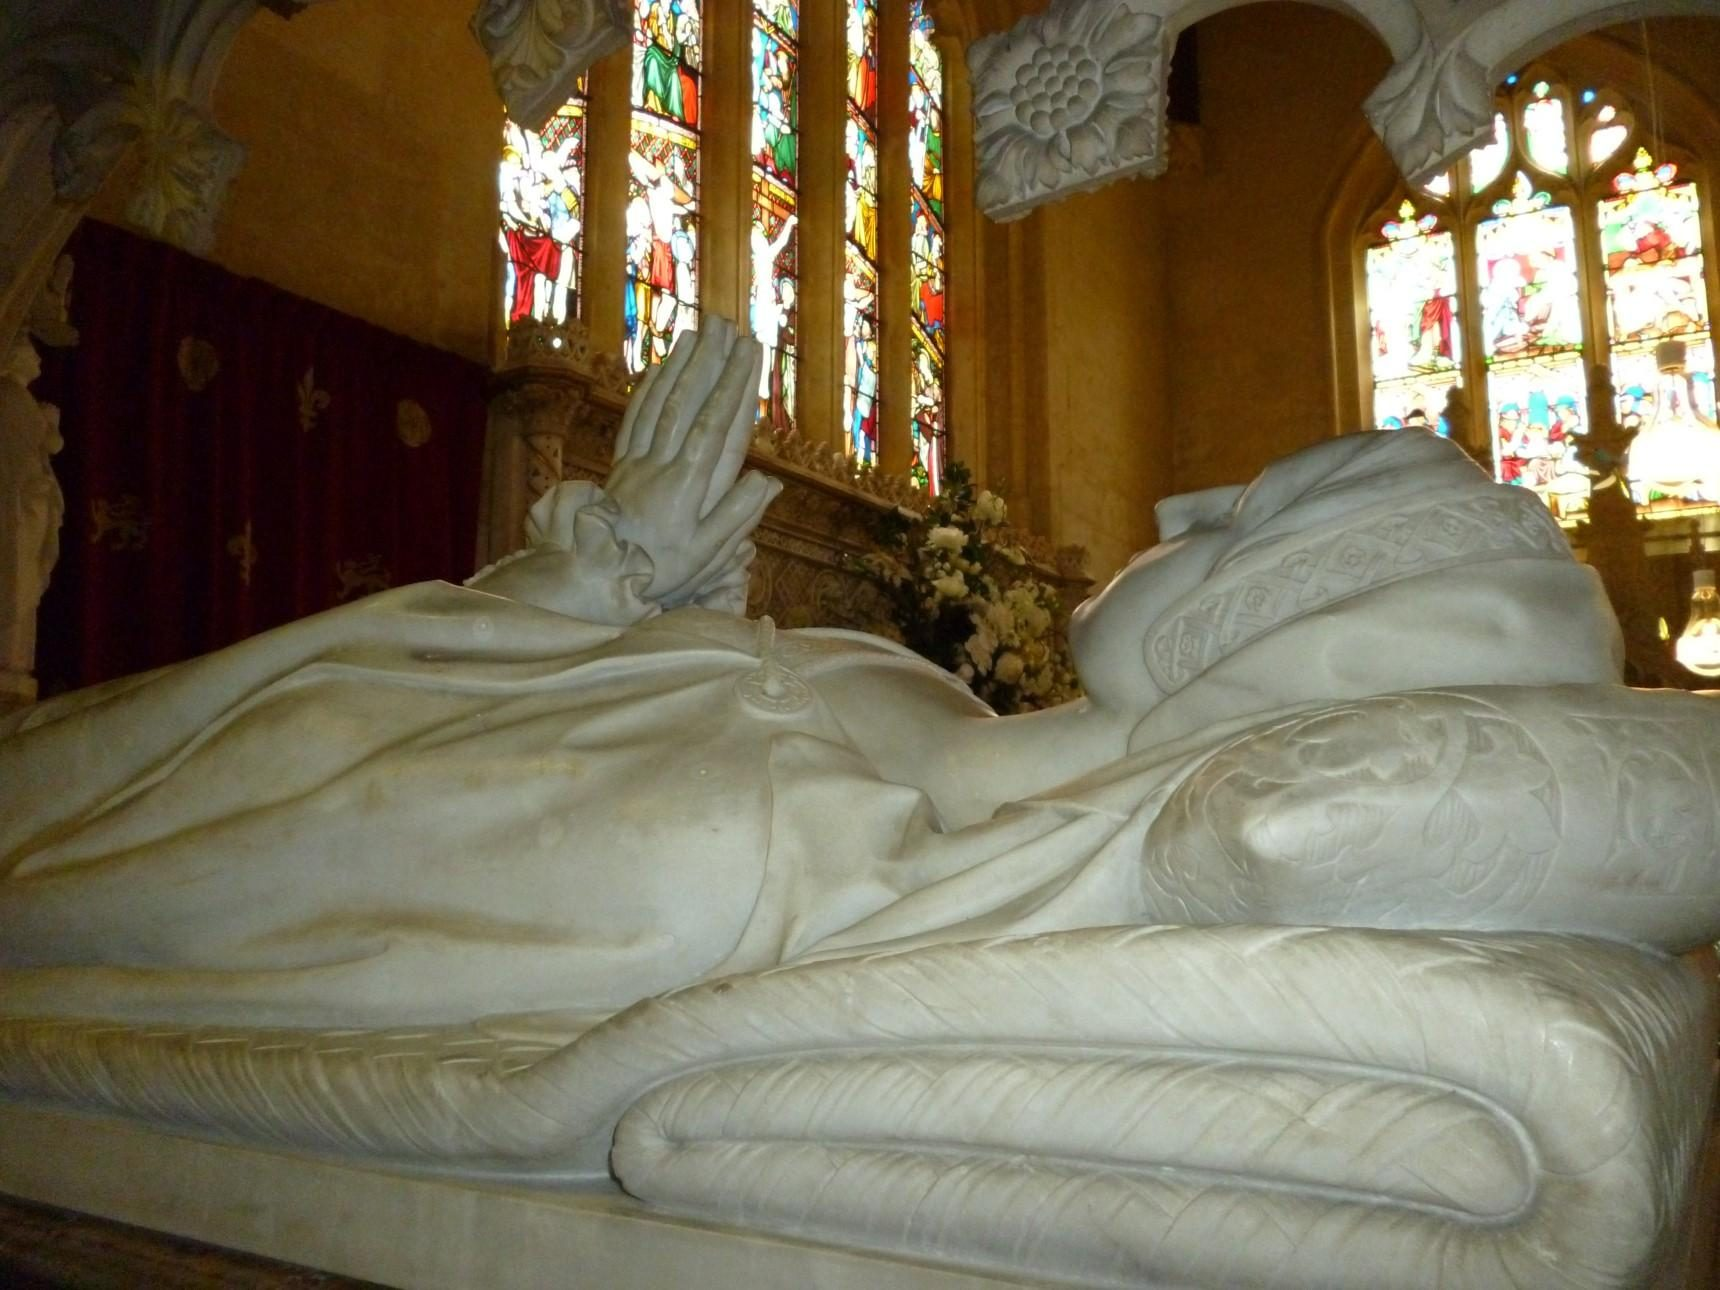 Tomb of Katherine Parr